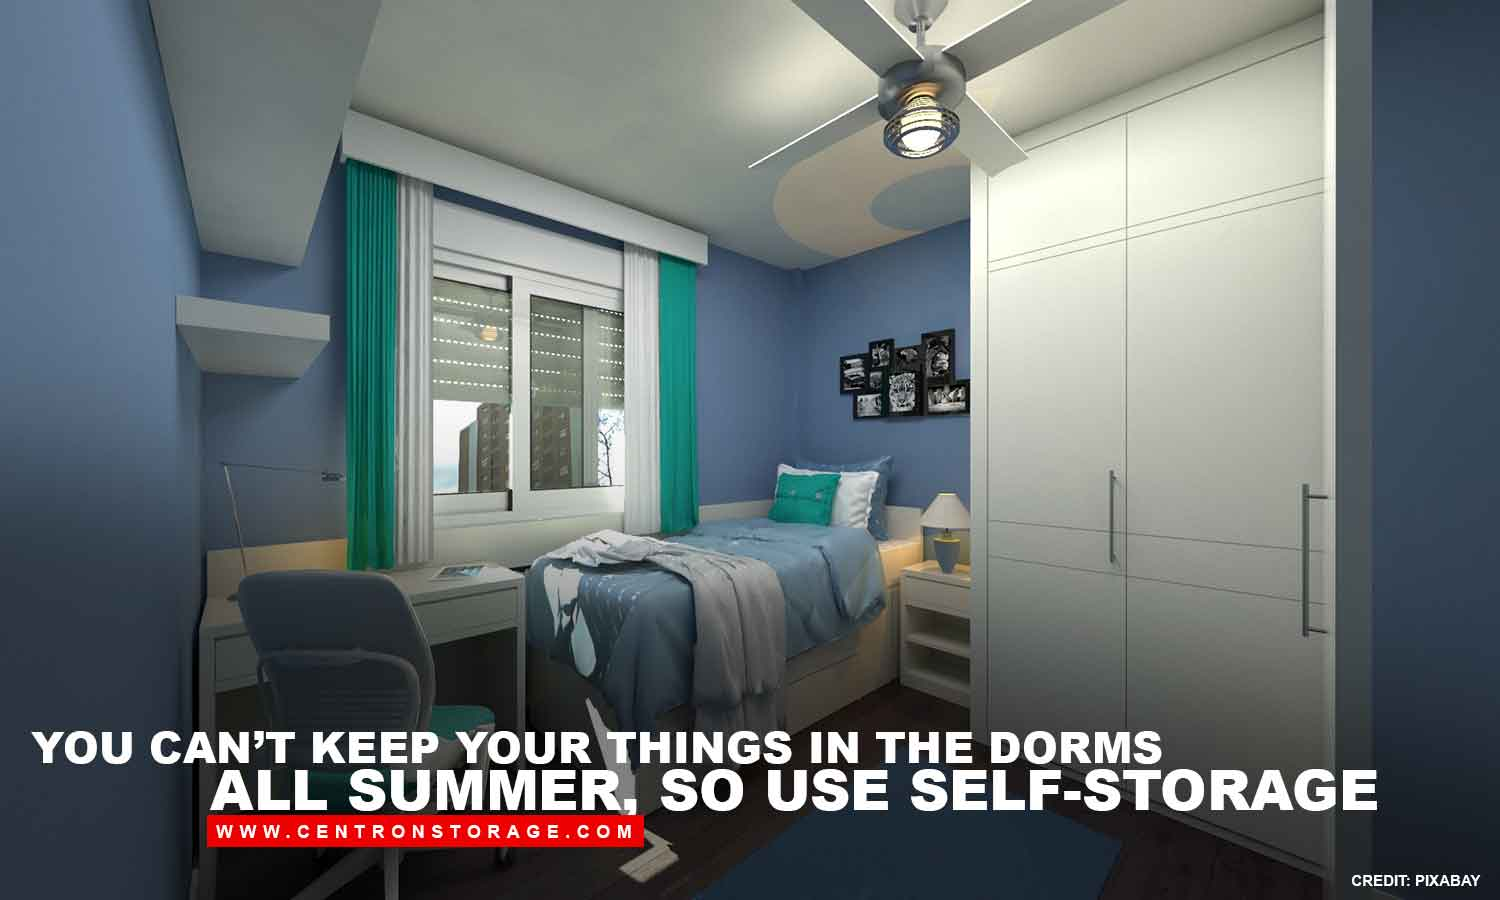 You can't keep your things in the dorms all summer, so use self-storage